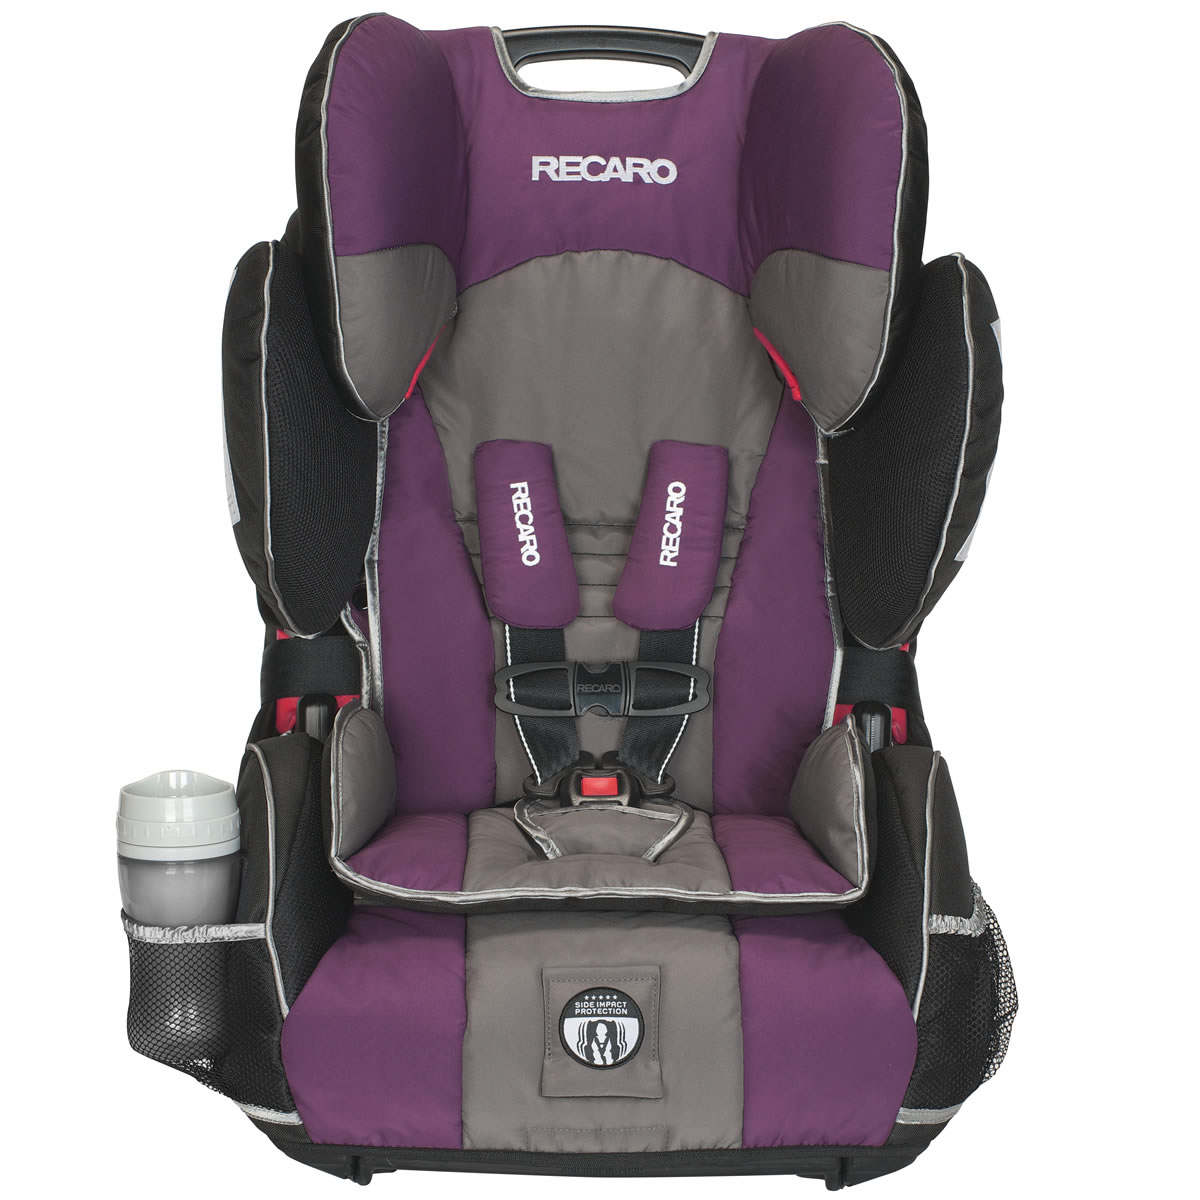 Recaro Booster Car Seat RECARO Performance SPORT Combination Harness to Booster Car Seat ...